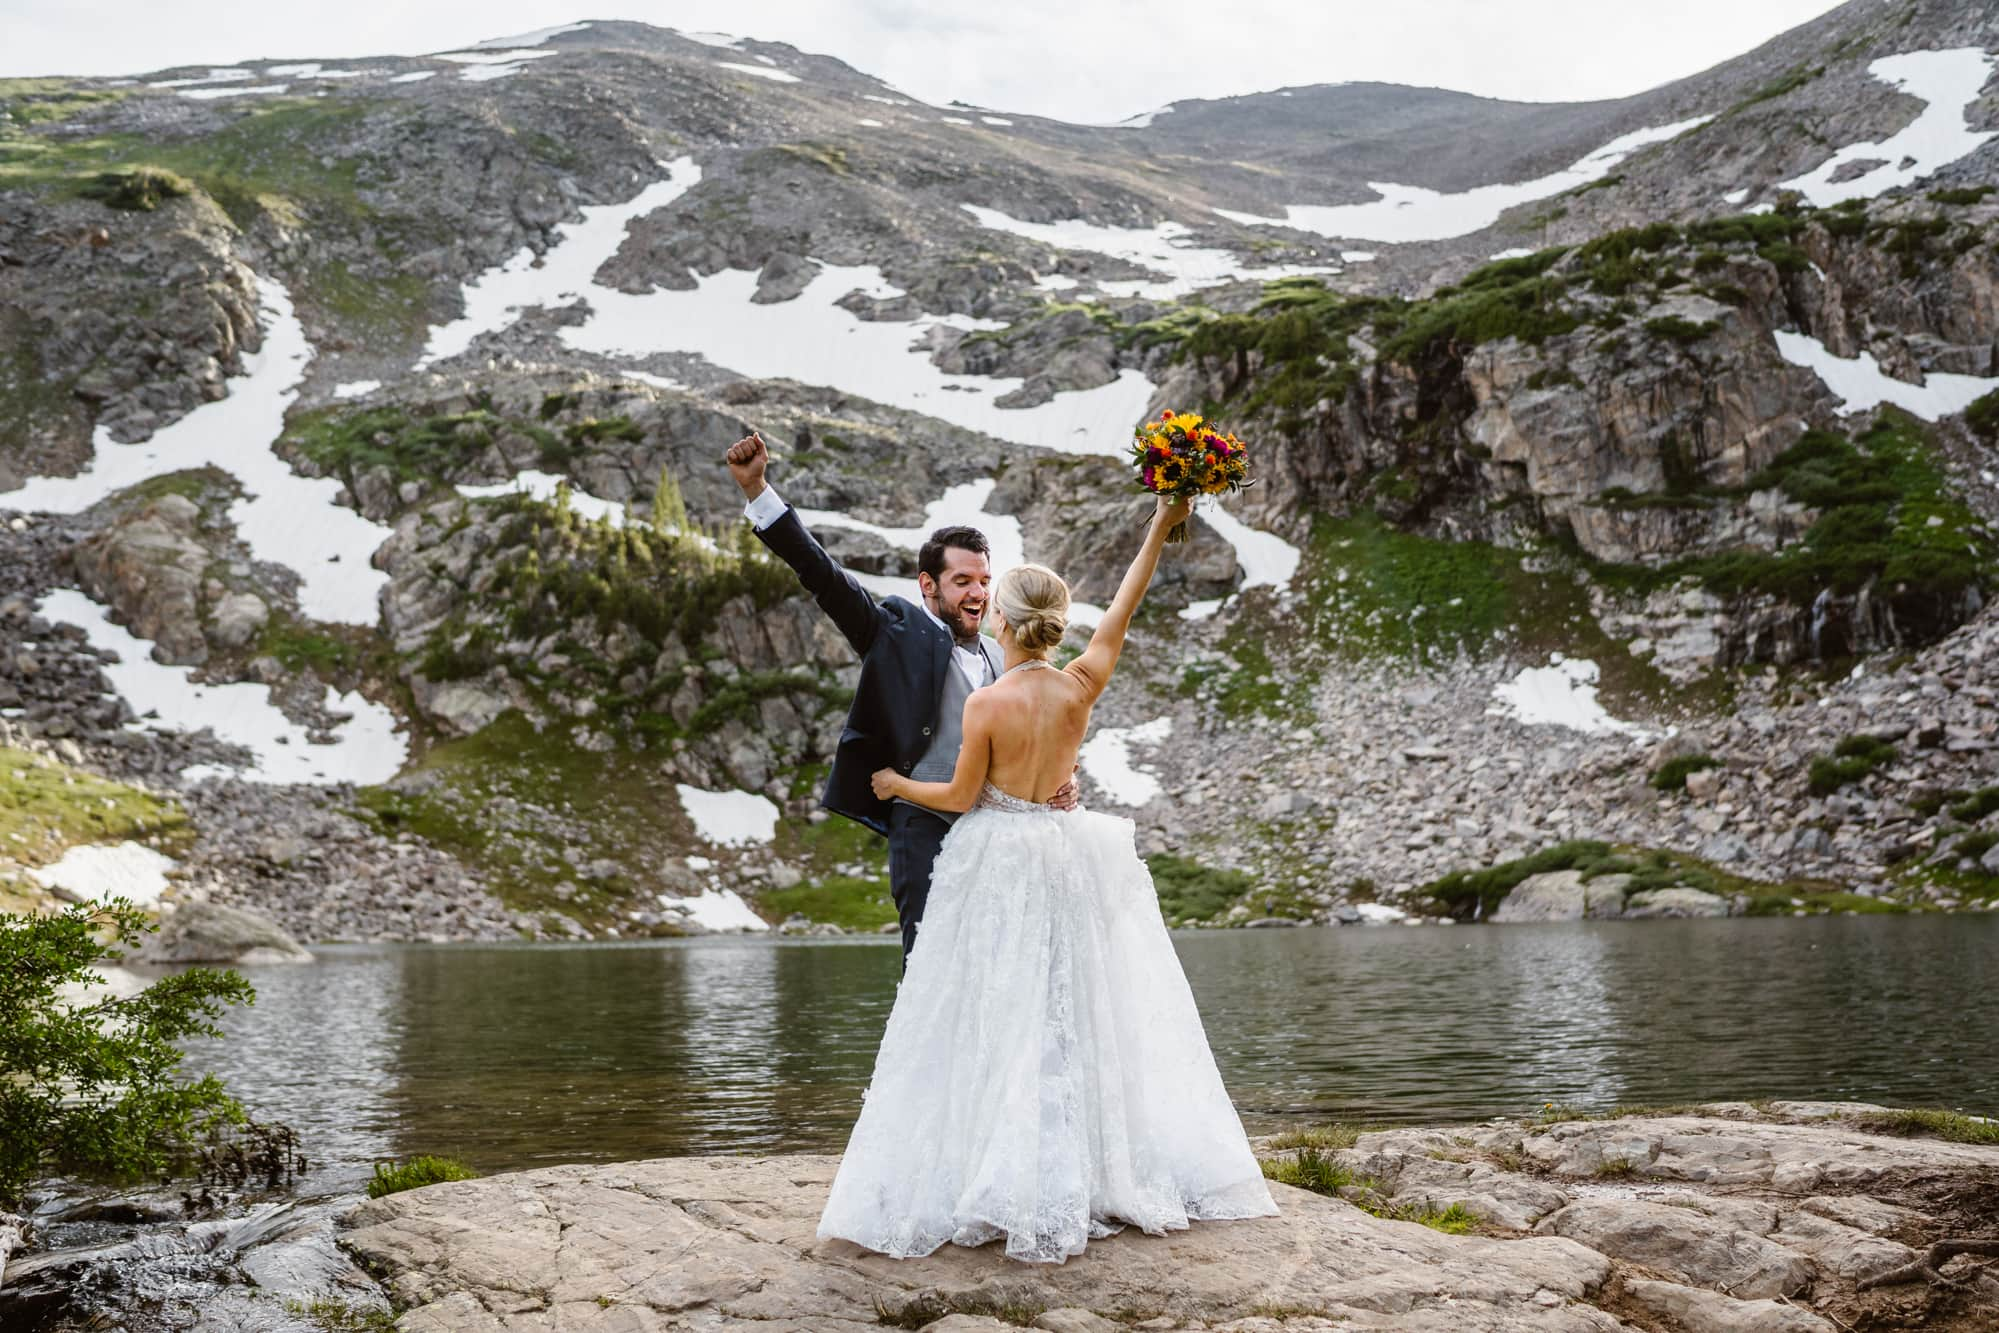 Bride and Groom First Look Vail Colorado Elopement